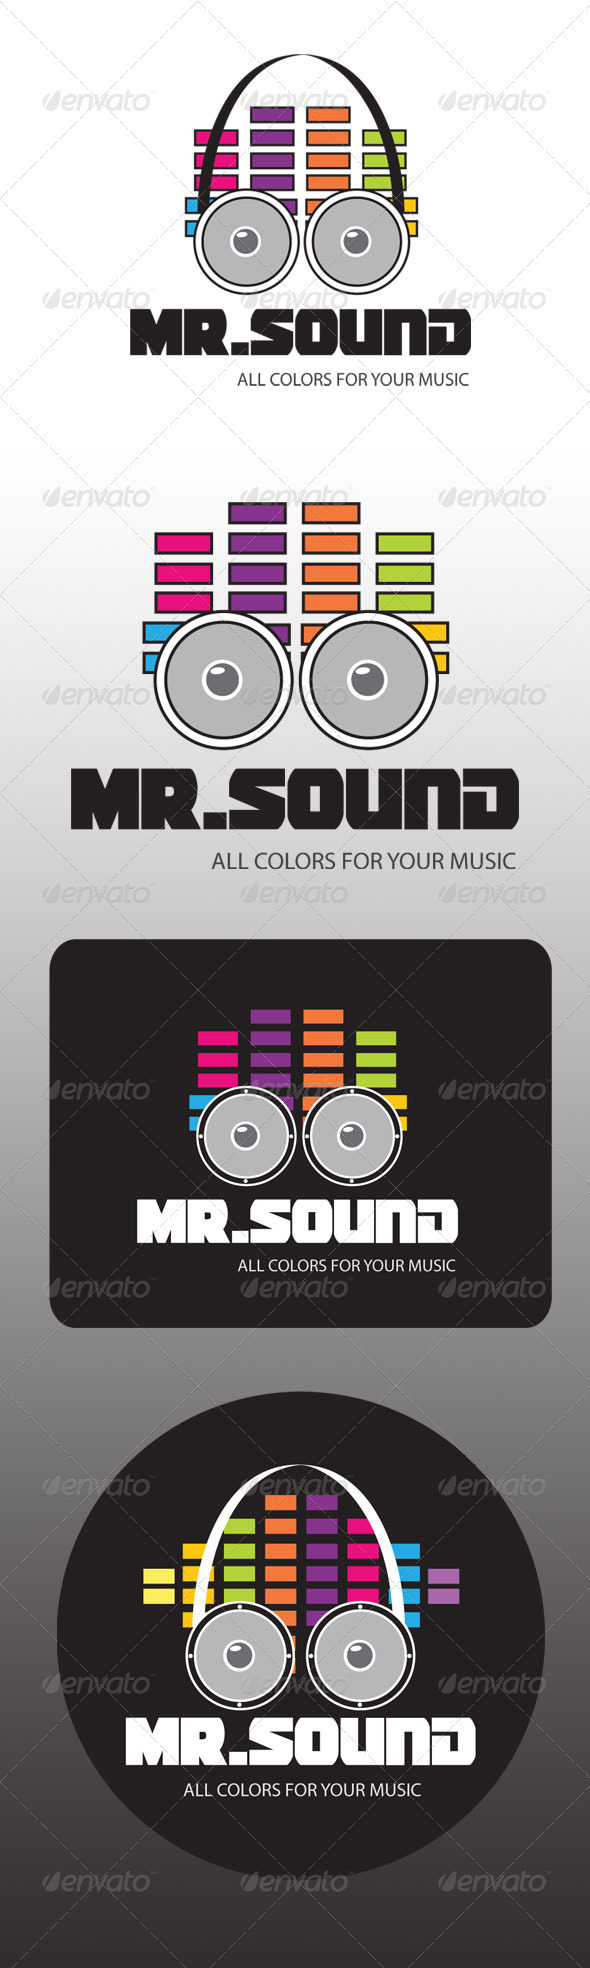 Mr Sound Audio Bar Buffer Color Disco Dj Set Equalize Man Music Statistic Realistic Photo Graphic Print Obejct Business Web